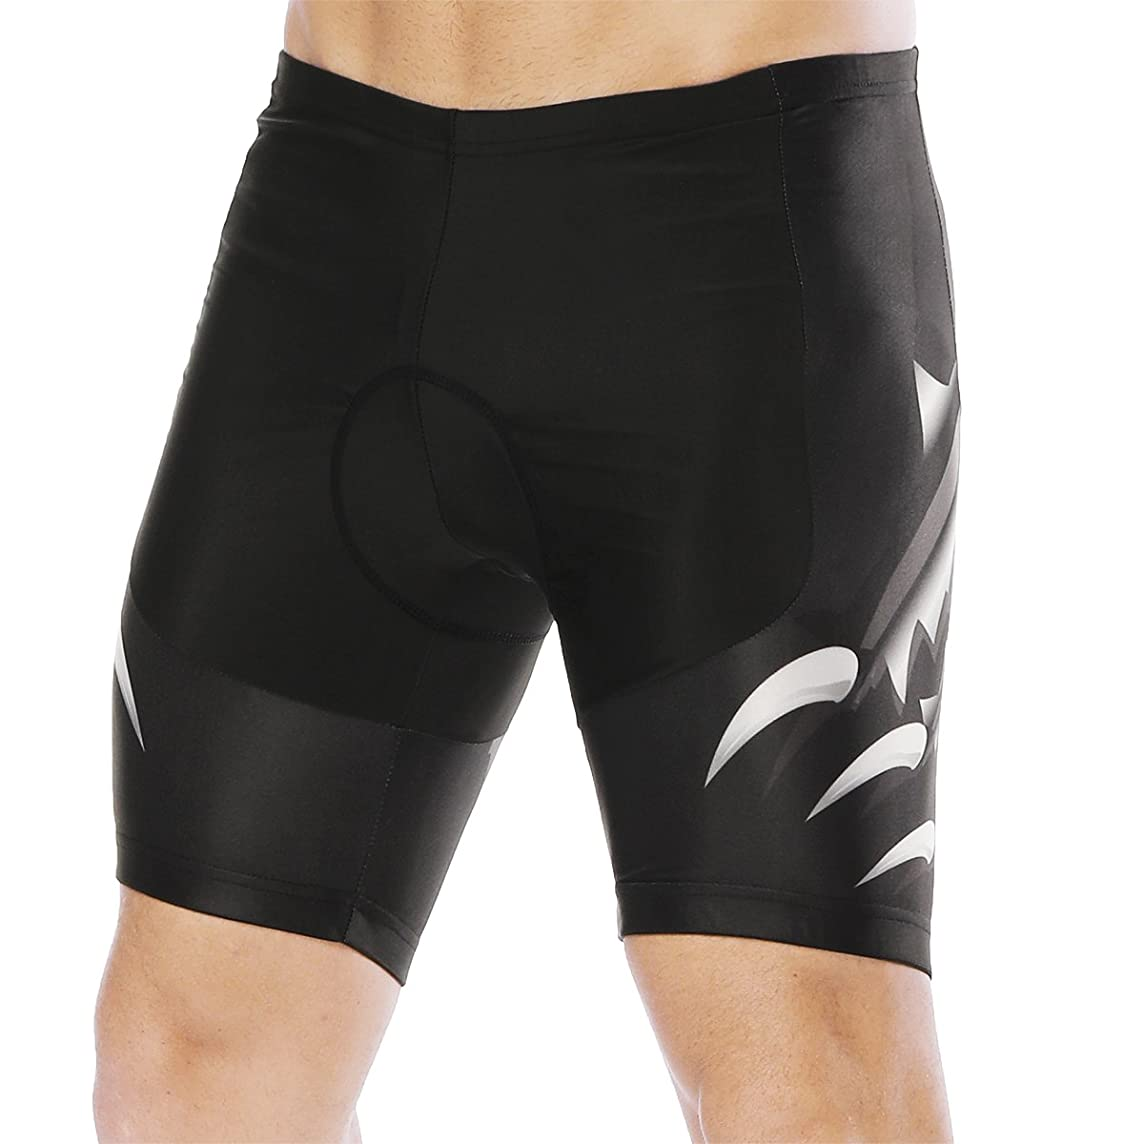 YOOKI Men's Cycling Shorts 3D Padded Bicycle Riding Pants Bike Biking Cycle Wear Tights